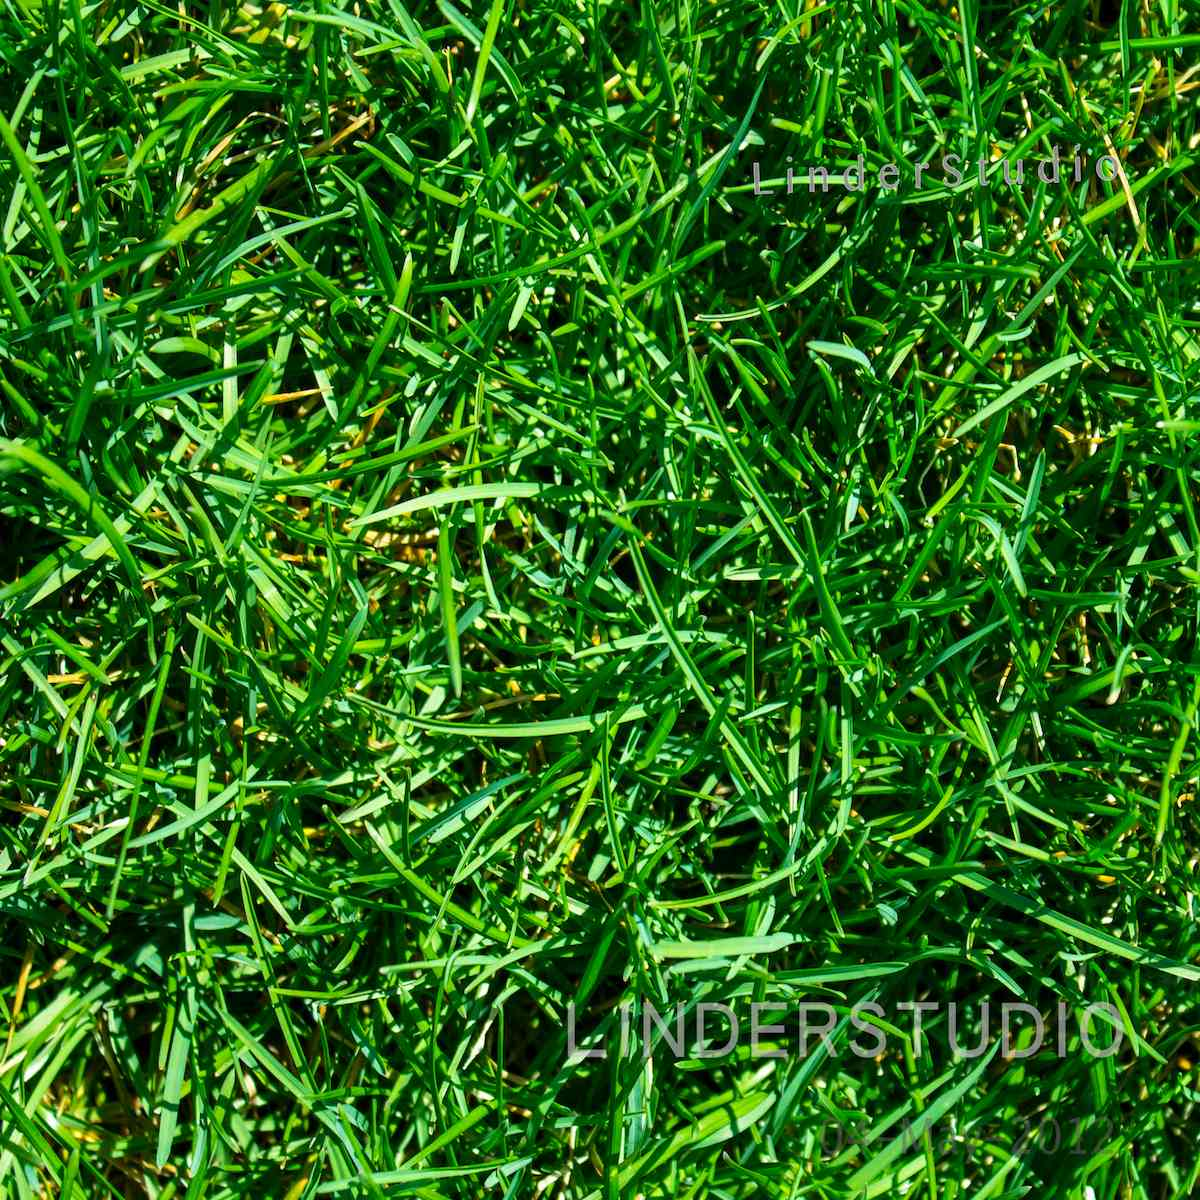 patch_of_grass63113.jpg